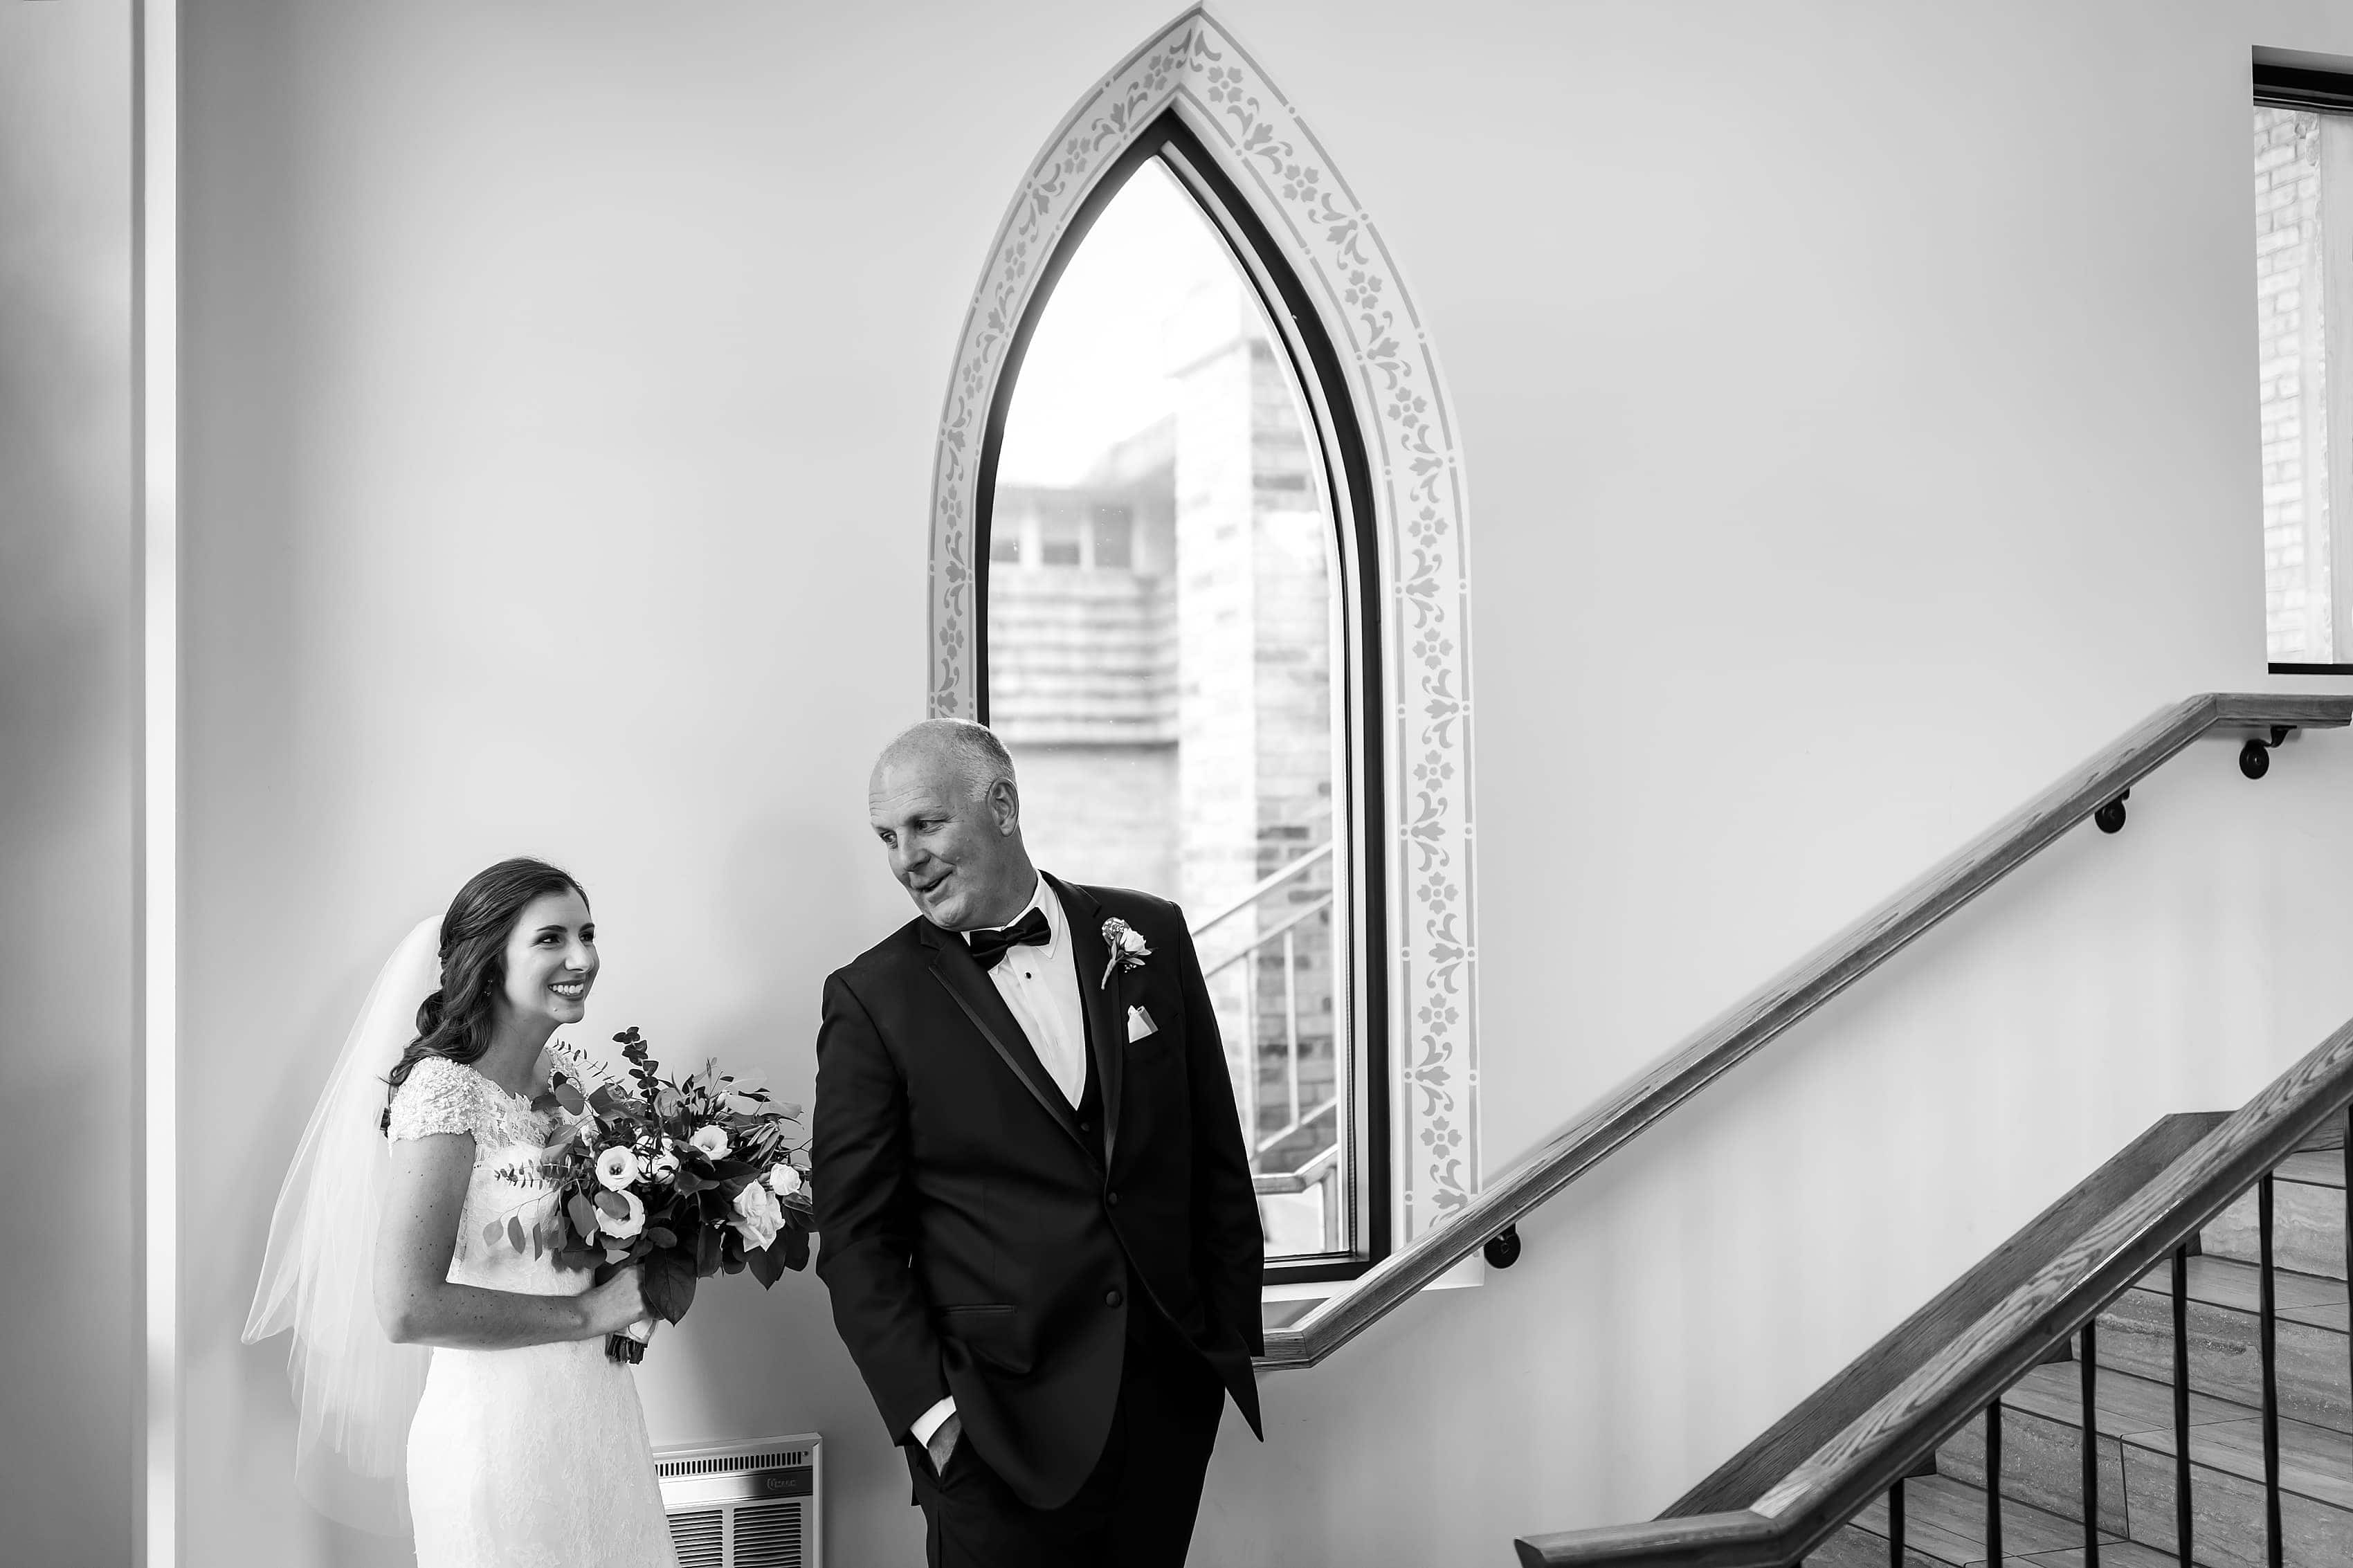 Father of the bride and daughter get ready outside church to walk down the aisle